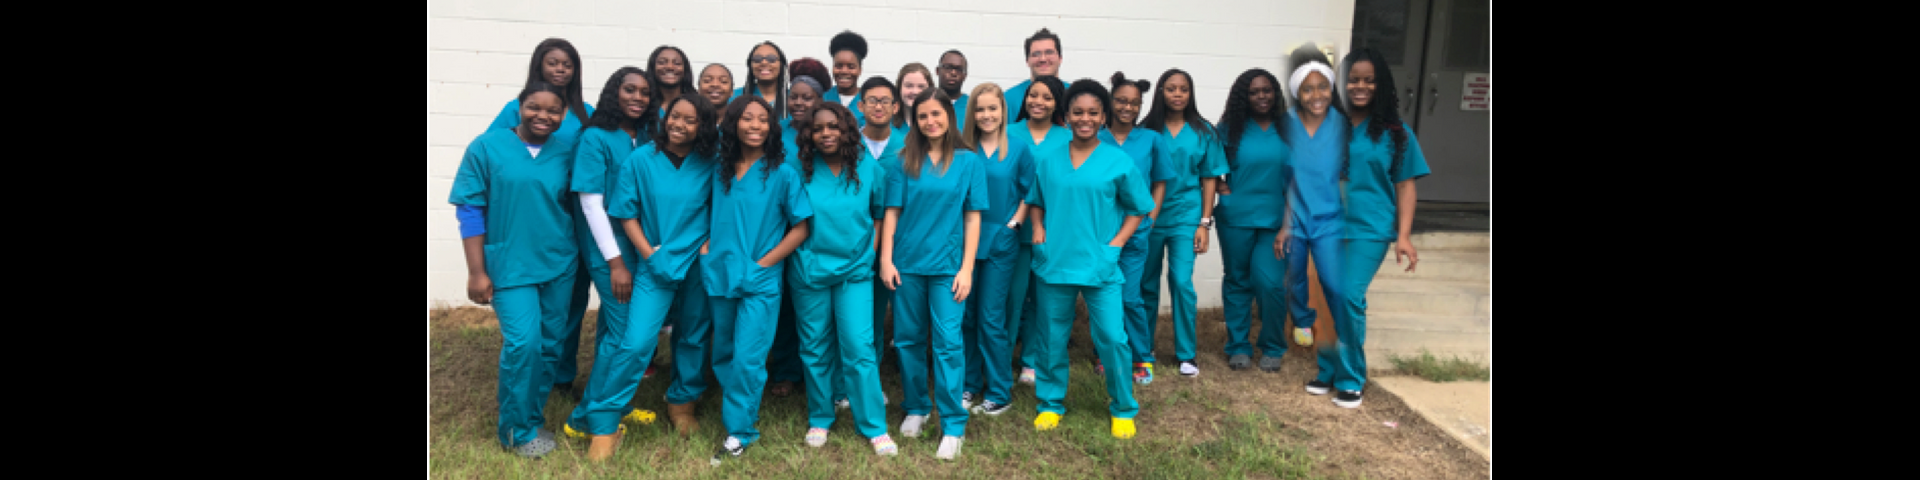 Keith High First Year, Career Tech Nursing Sophomores